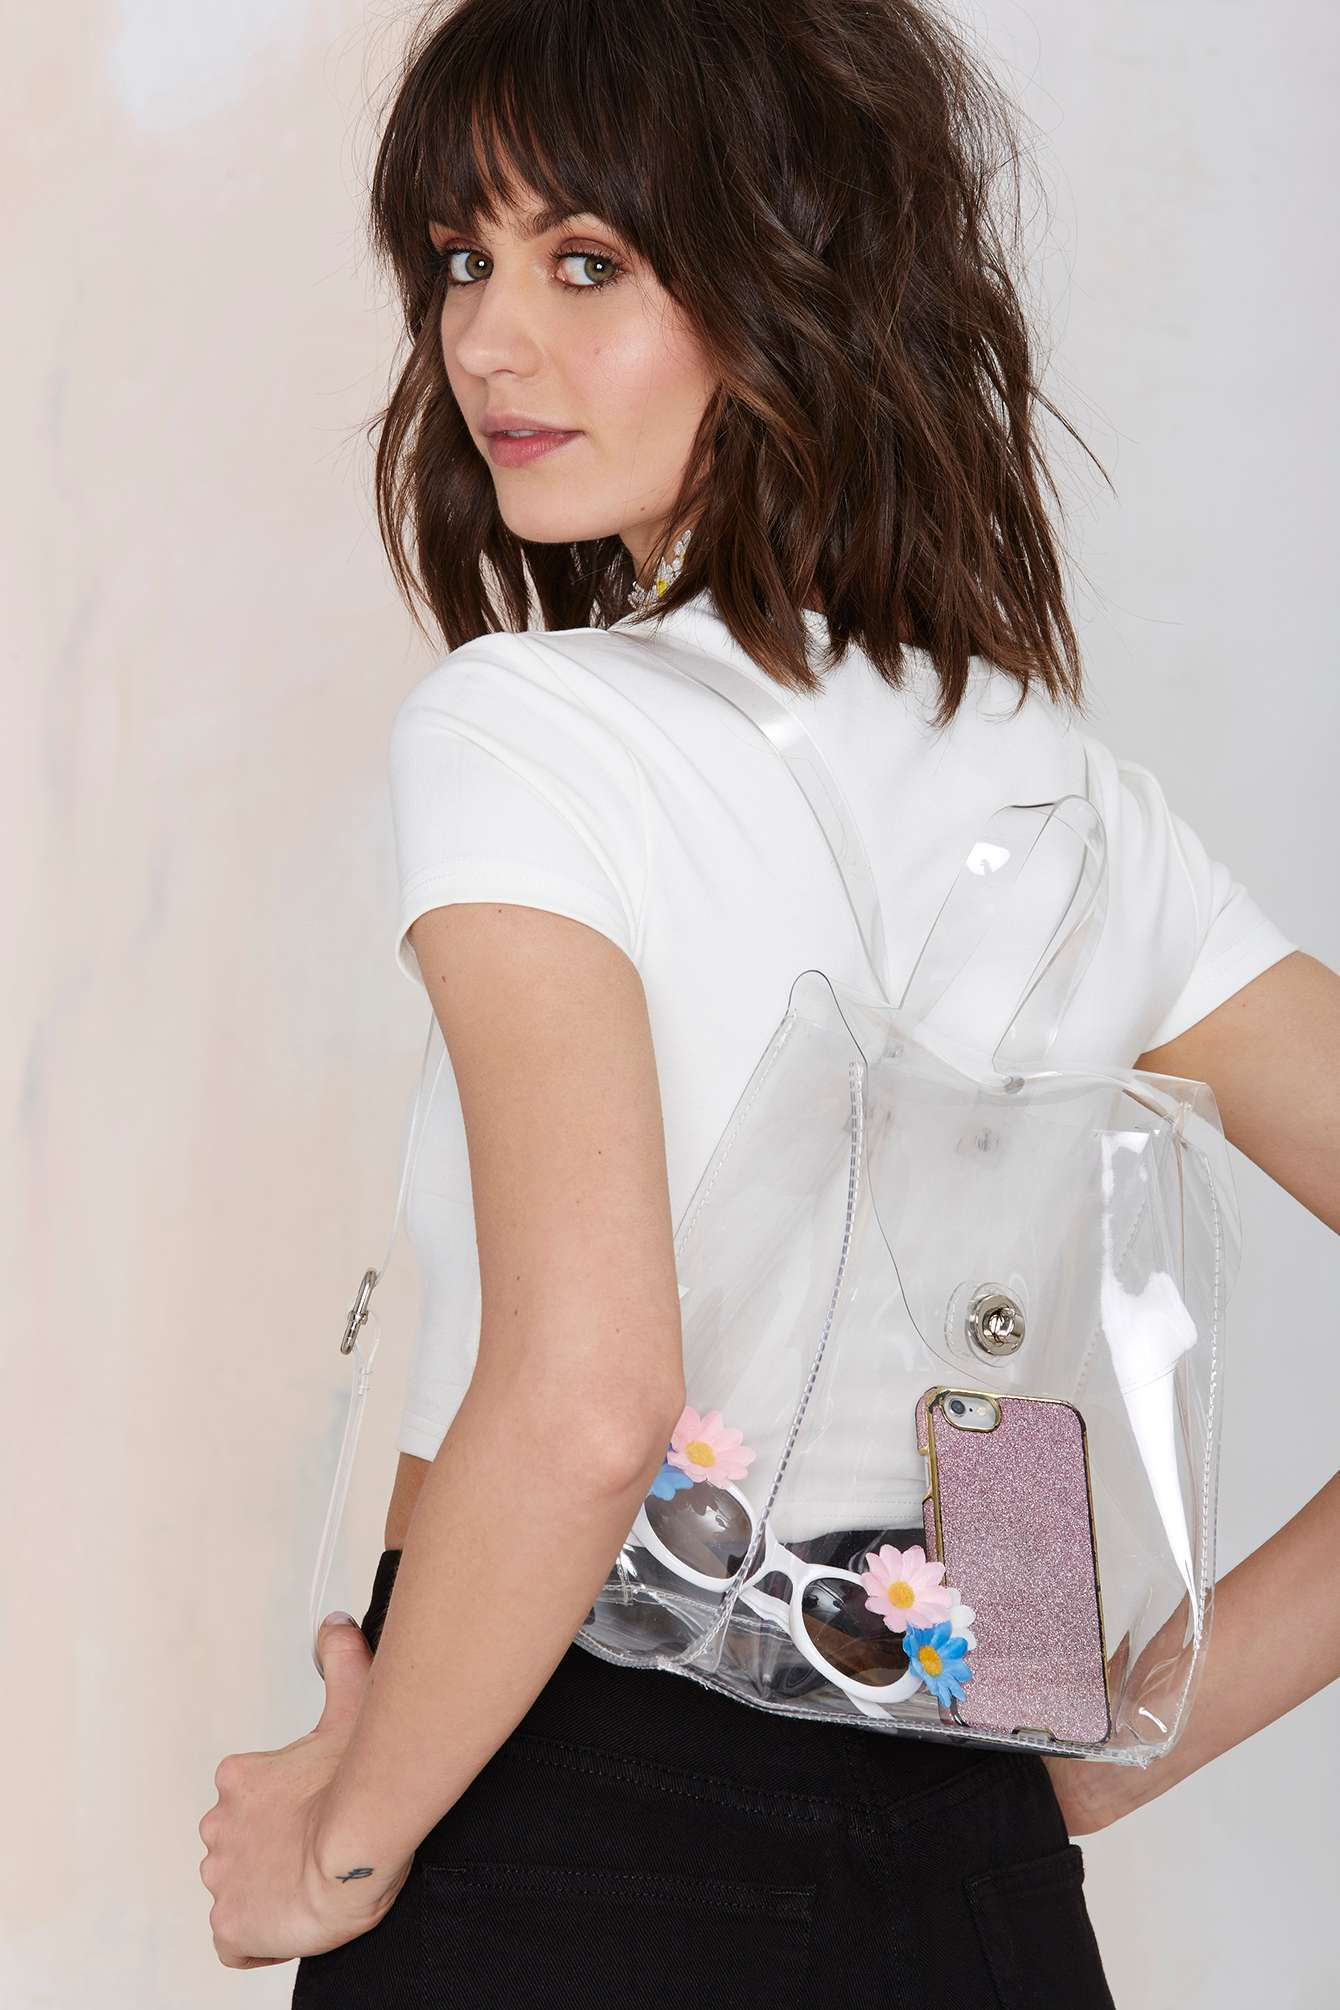 Most Beautiful Clear and Transparent Handbags-See Through Accessories